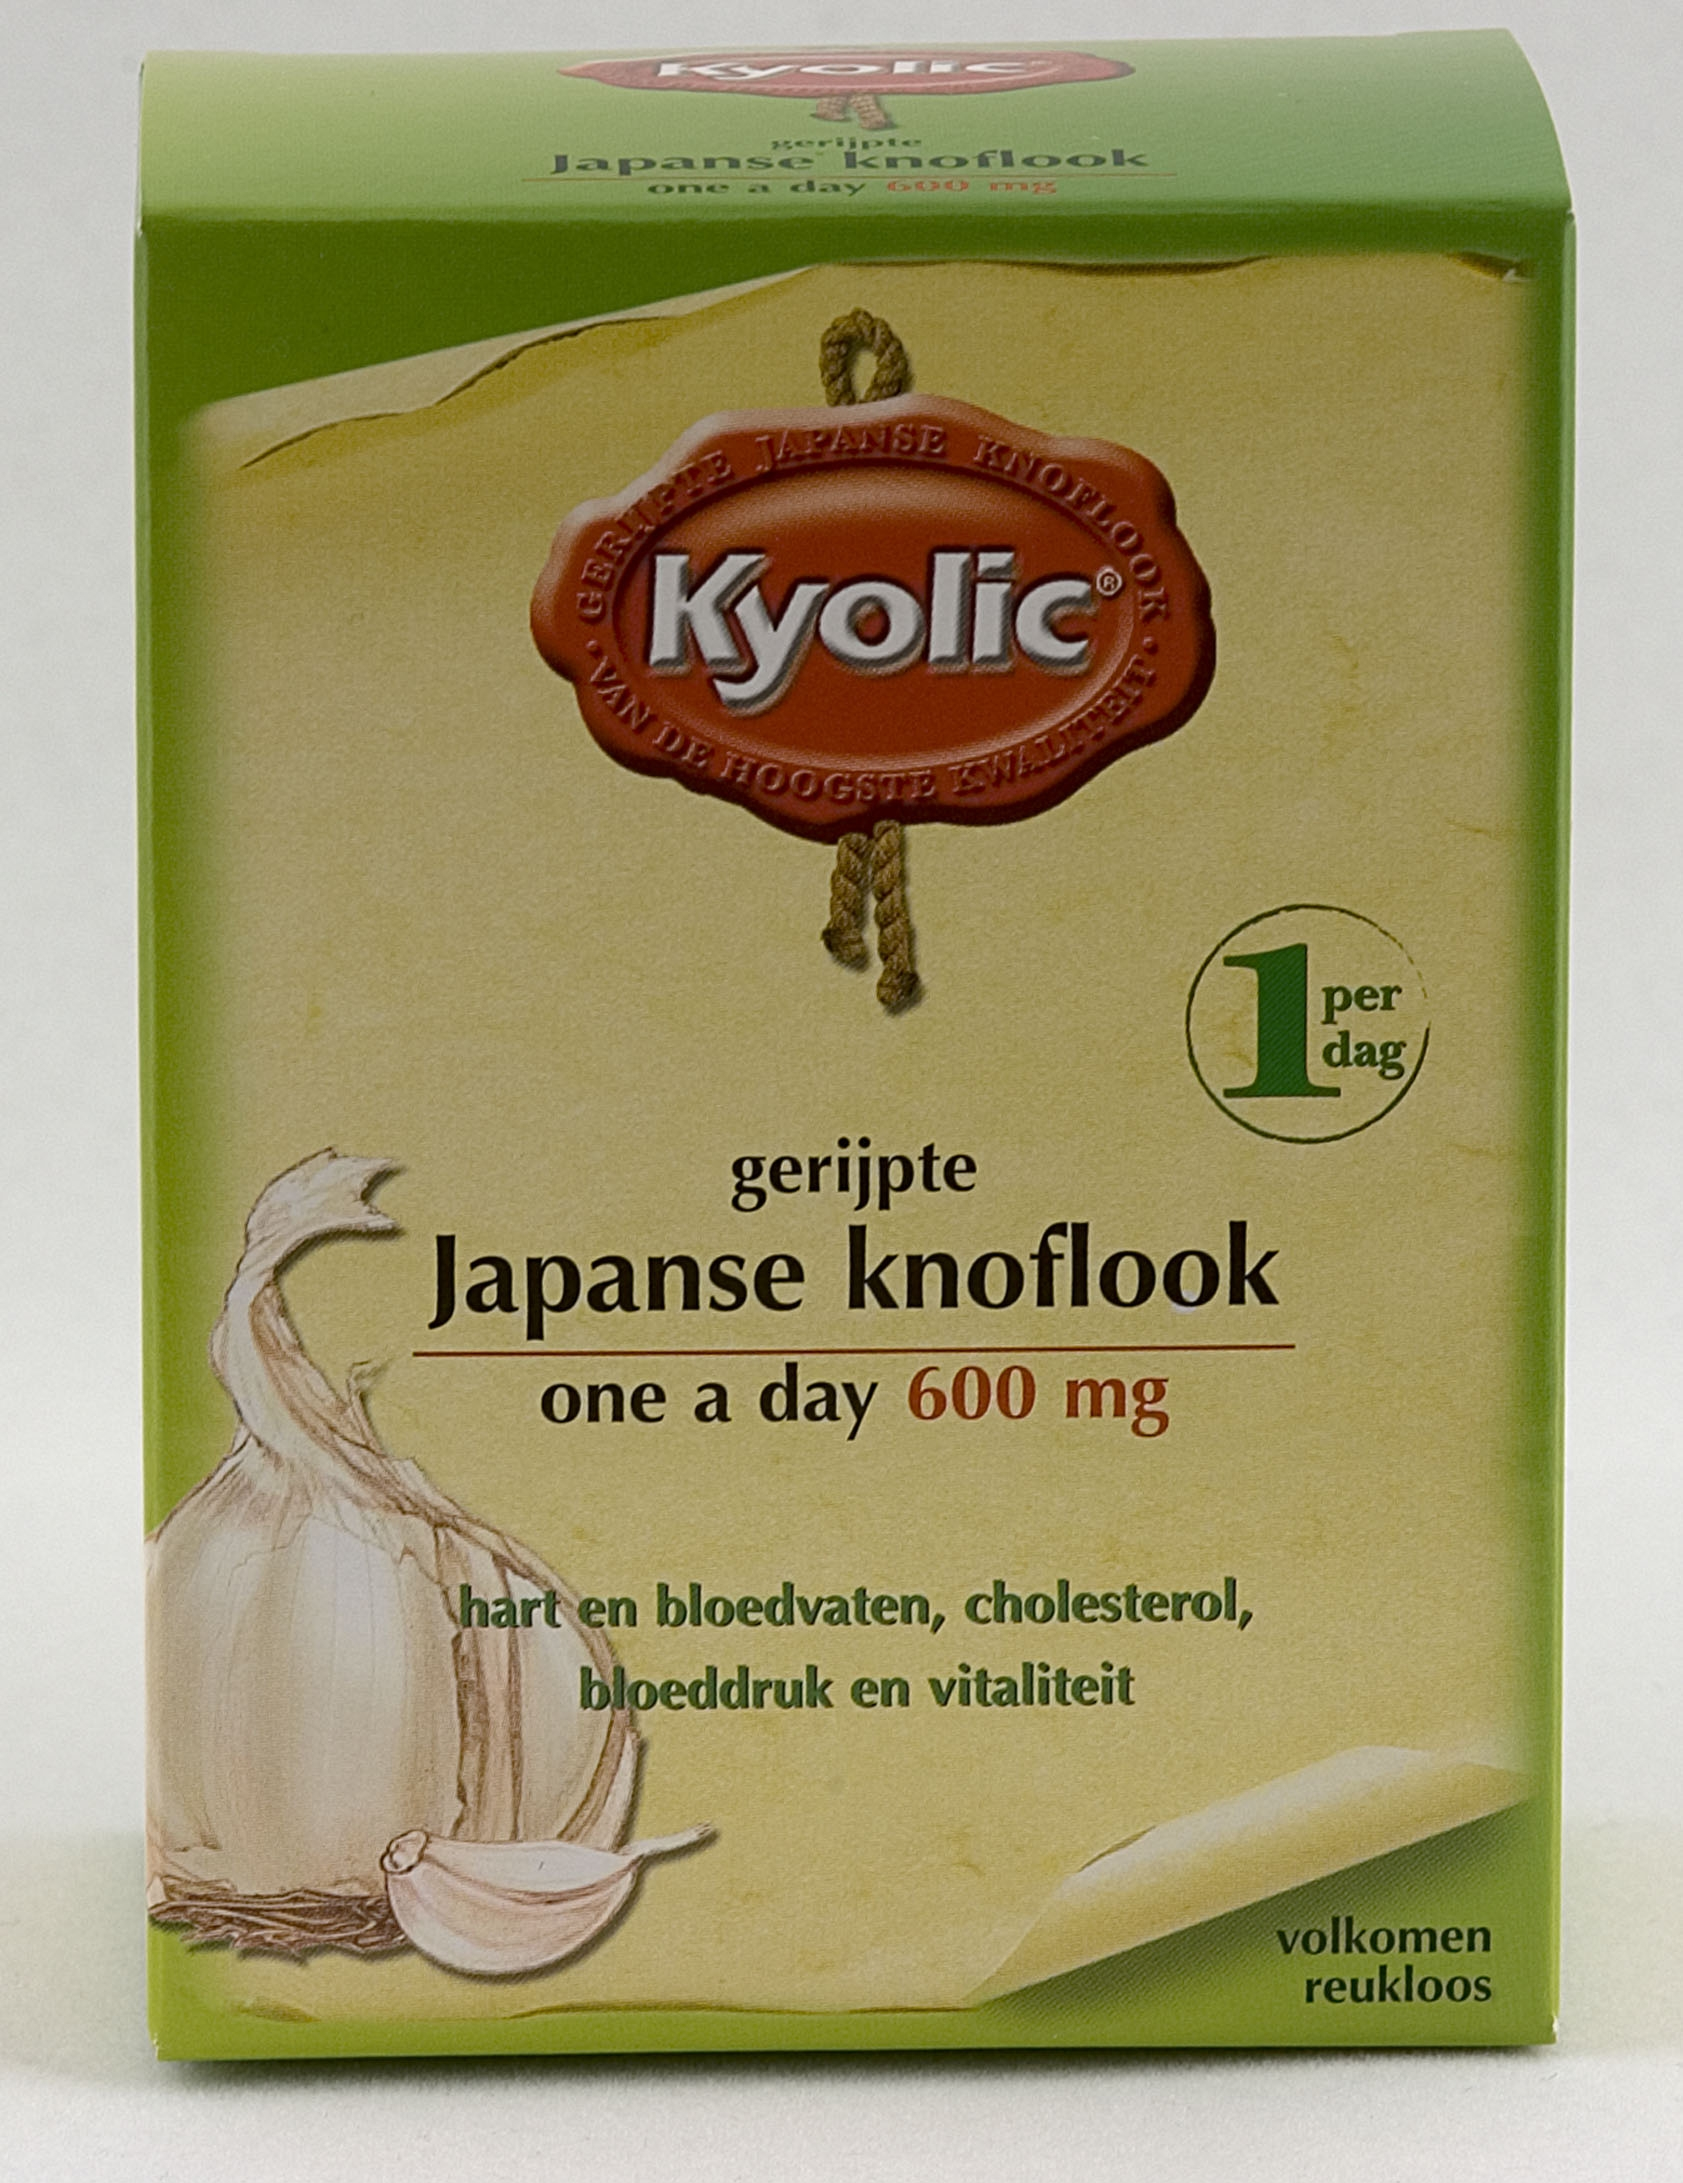 KYOLIC KNOFLOOK ONE A DAY